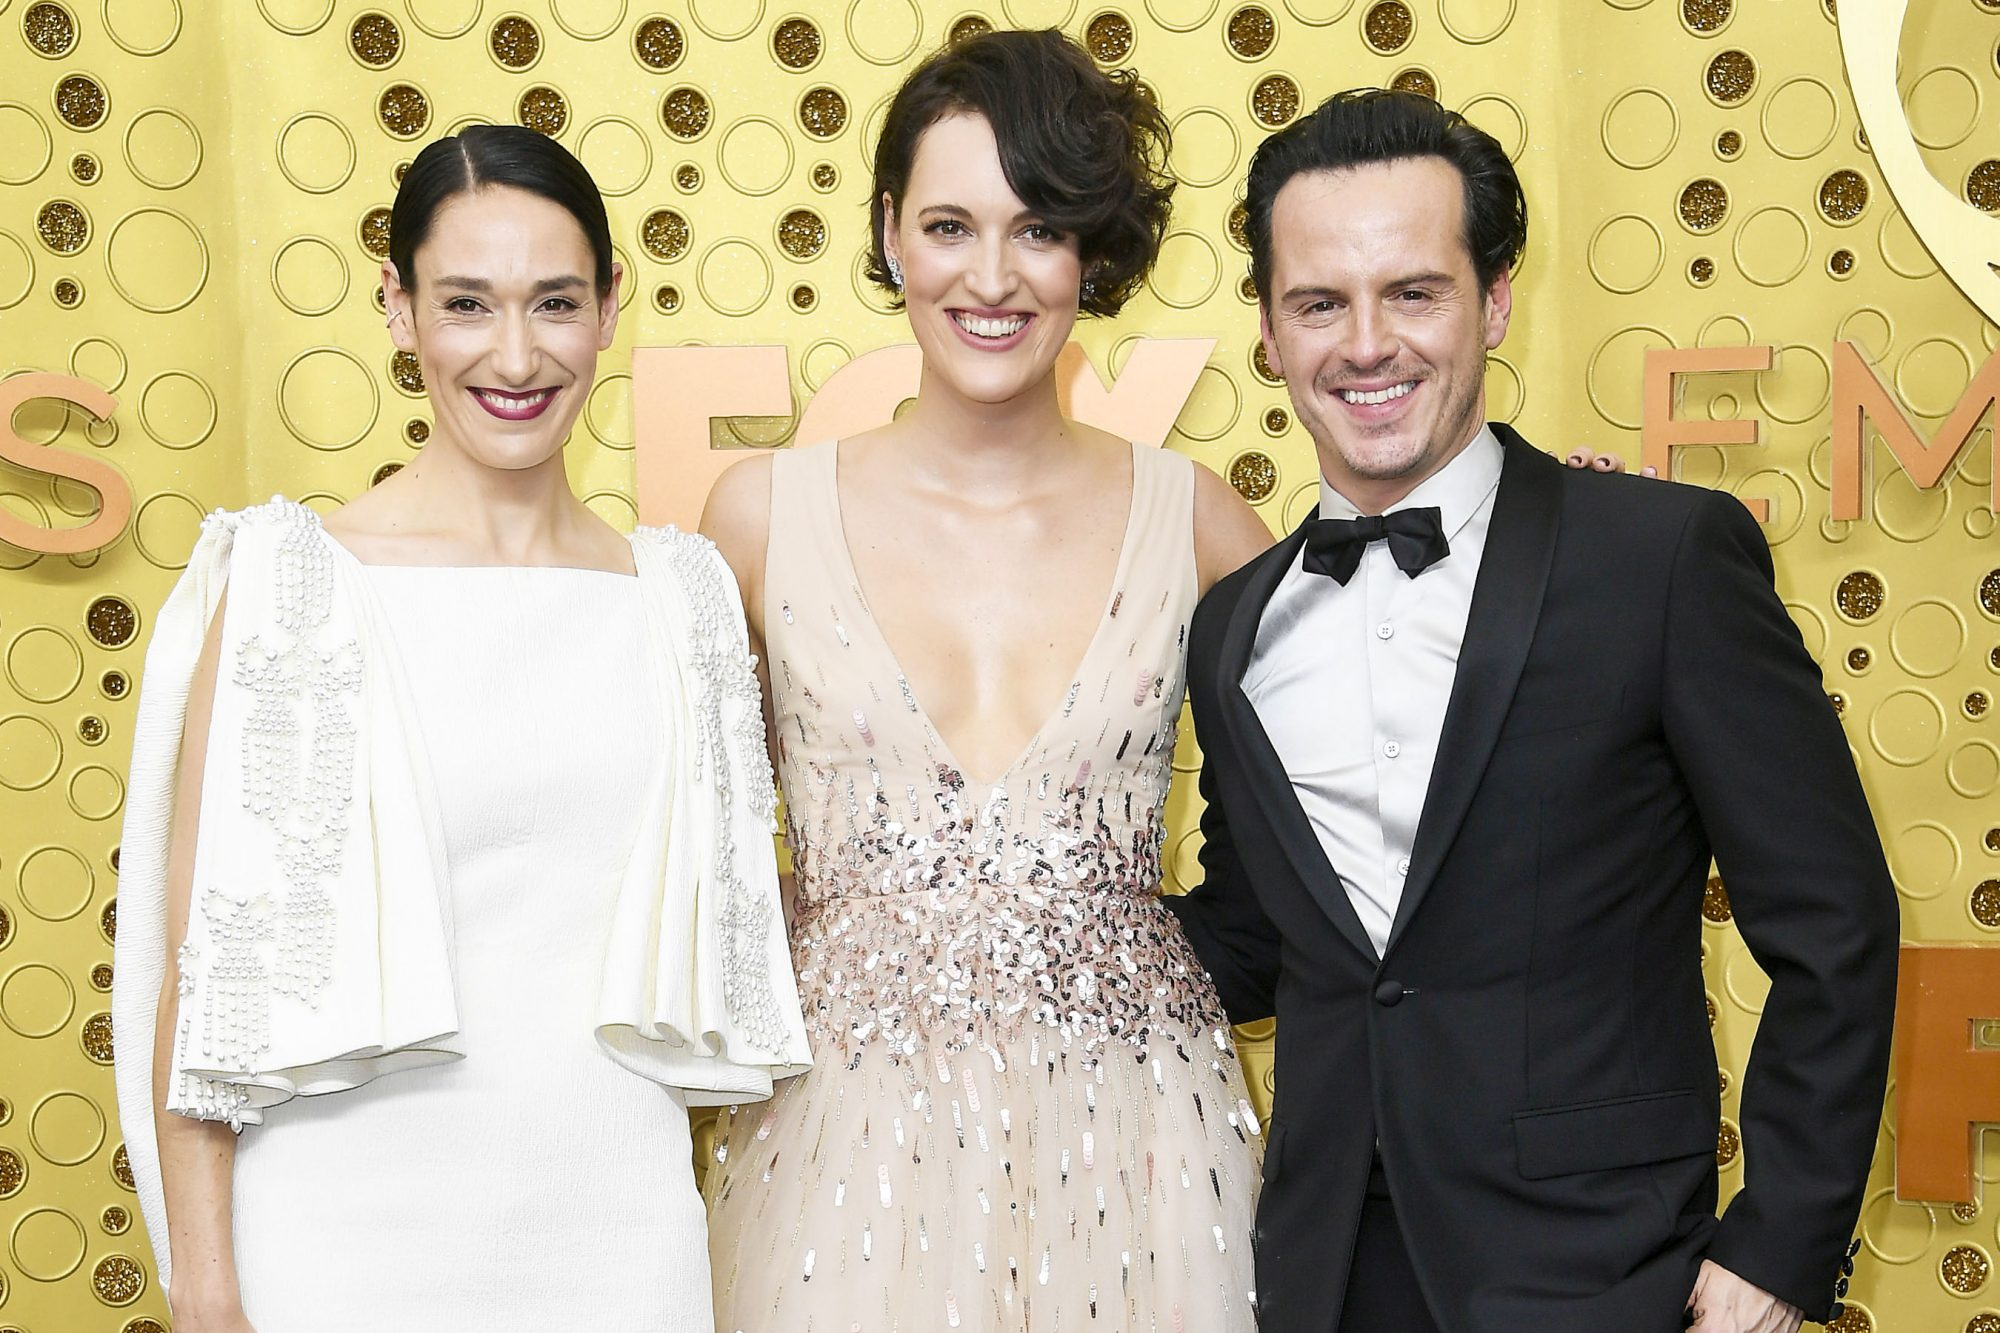 LOS ANGELES, CALIFORNIA - SEPTEMBER 22: (L-R) Sian Clifford, Phoebe Waller-Bridge, and Andrew Scott attend the 71st Emmy Awards at Microsoft Theater on September 22, 2019 in Los Angeles, California. (Photo by Frazer Harrison/Getty Images)